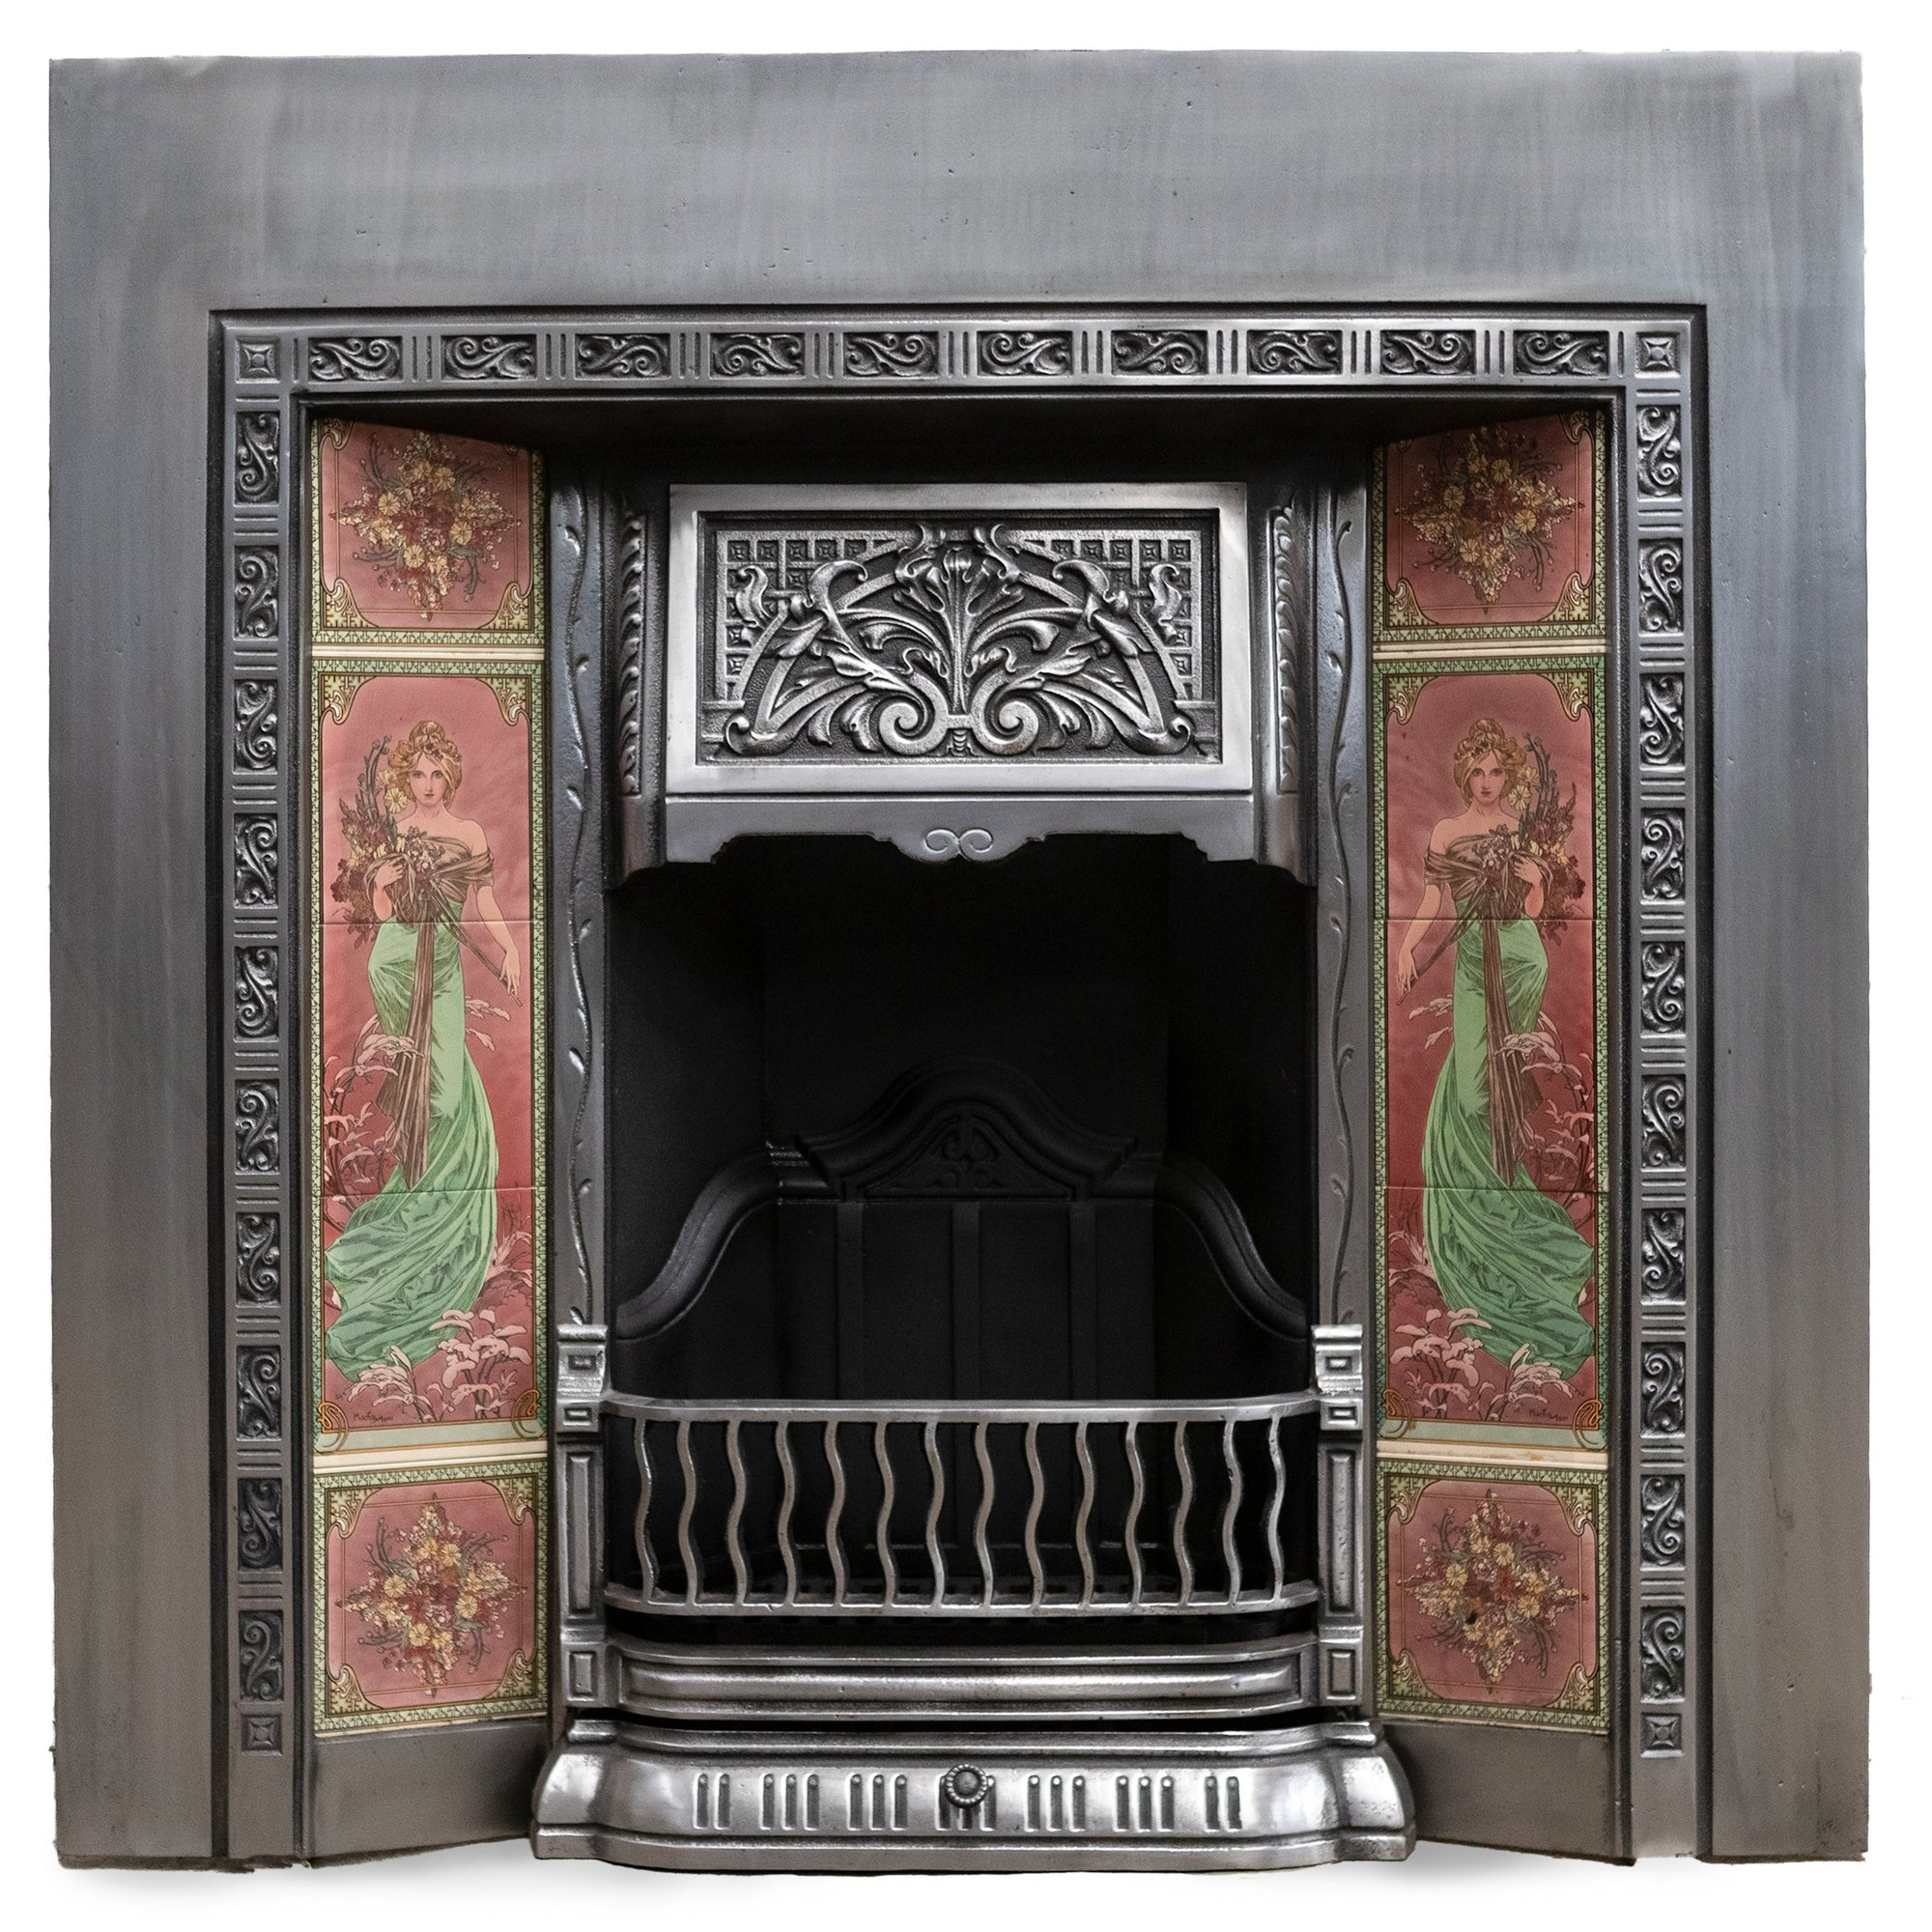 Reclaimed Art Nouveau Polished Fireplace Insert with Tiles